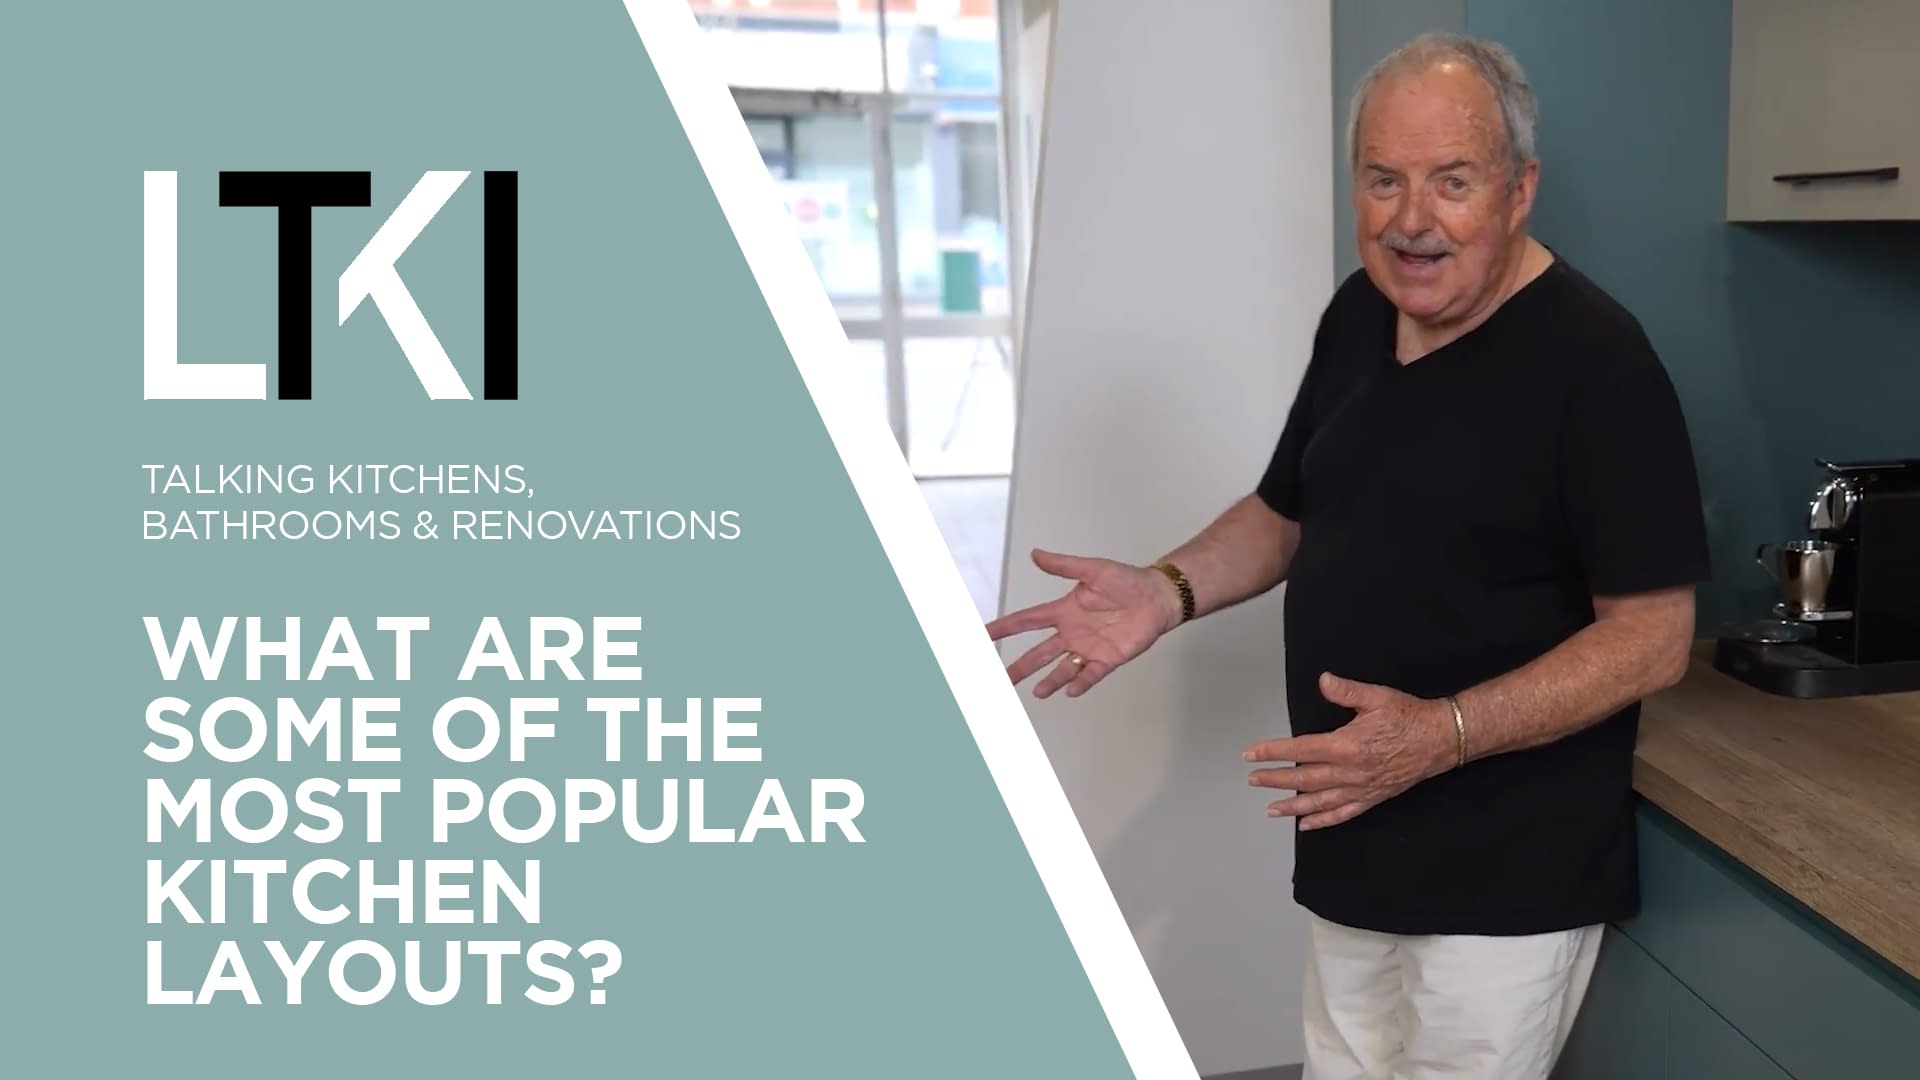 Talking Kitchens, Bathrooms & Renovations: What Are Some Of The Most Popular Kitchen Layouts?